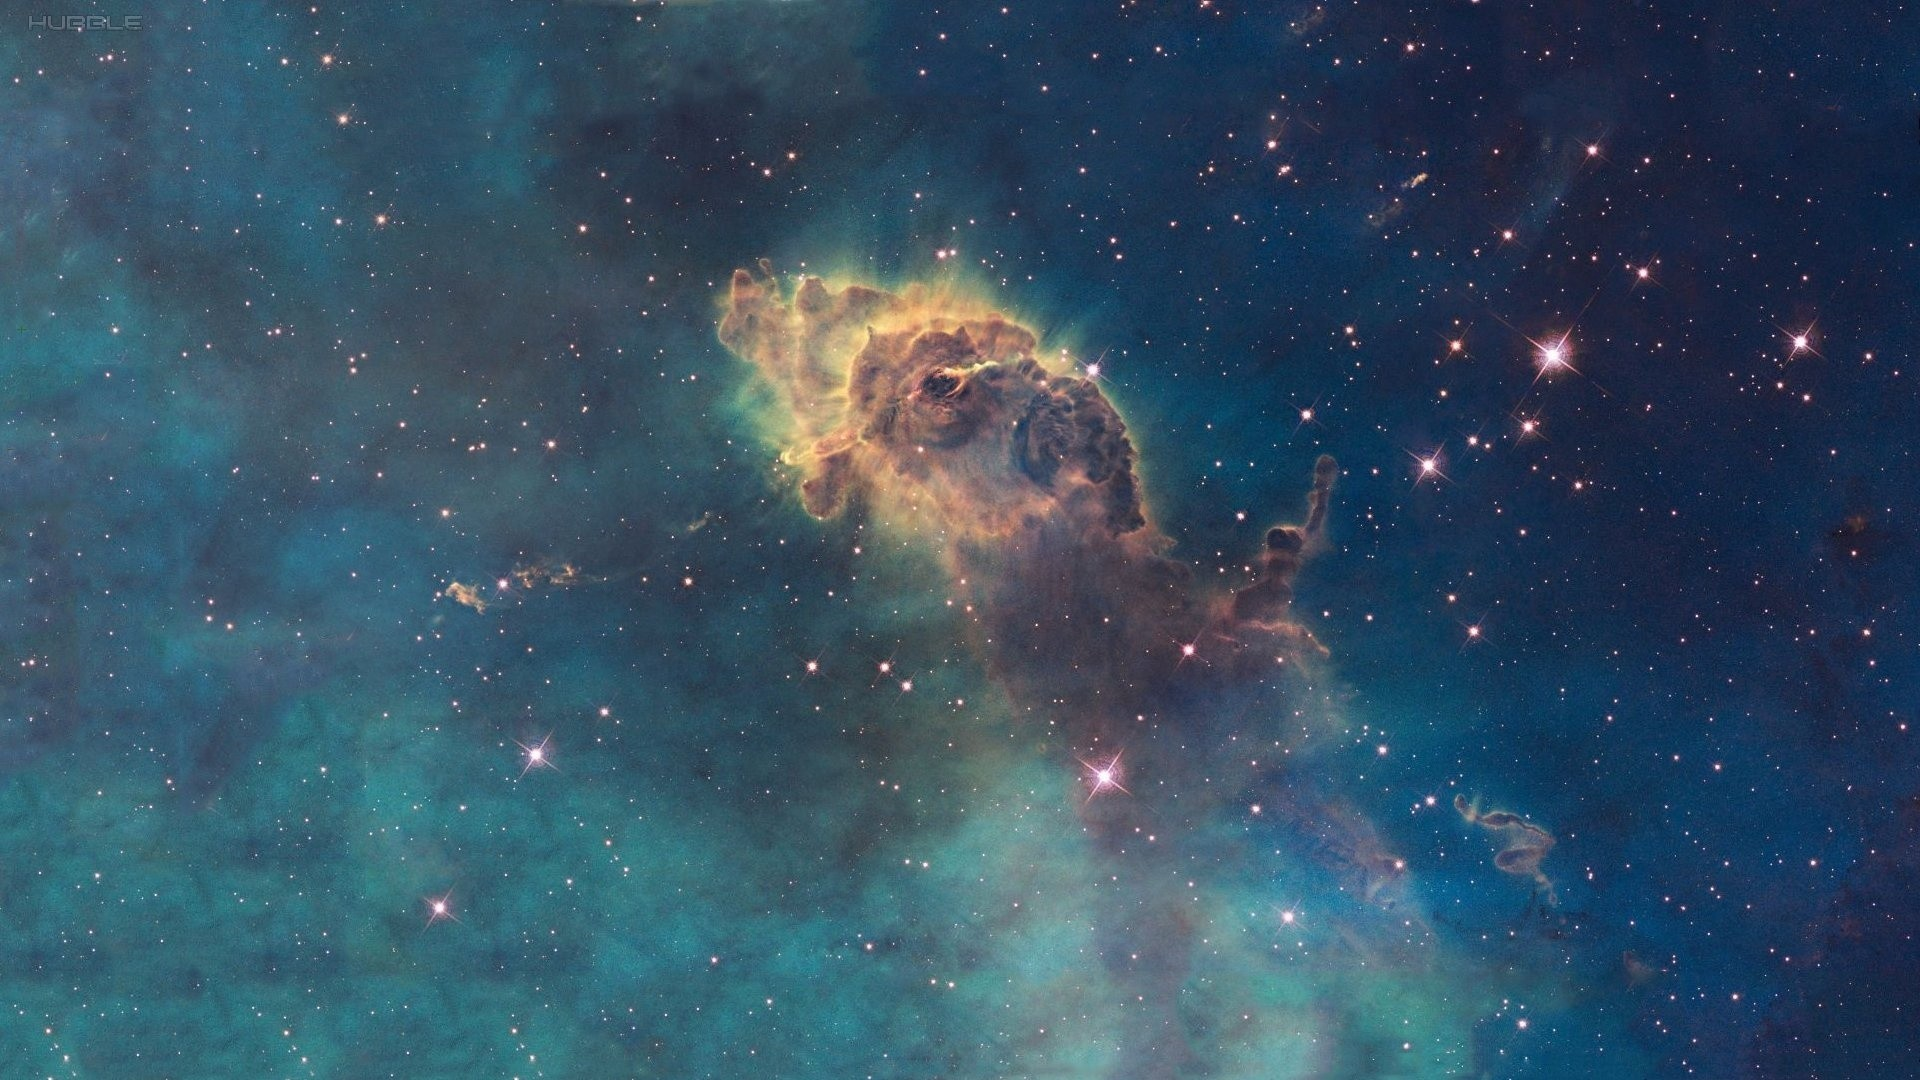 1920x1080 Hubble Space Wallpapers Picture with High Definition Wallpaper  px  379.91 KB Other Real Wallpapers